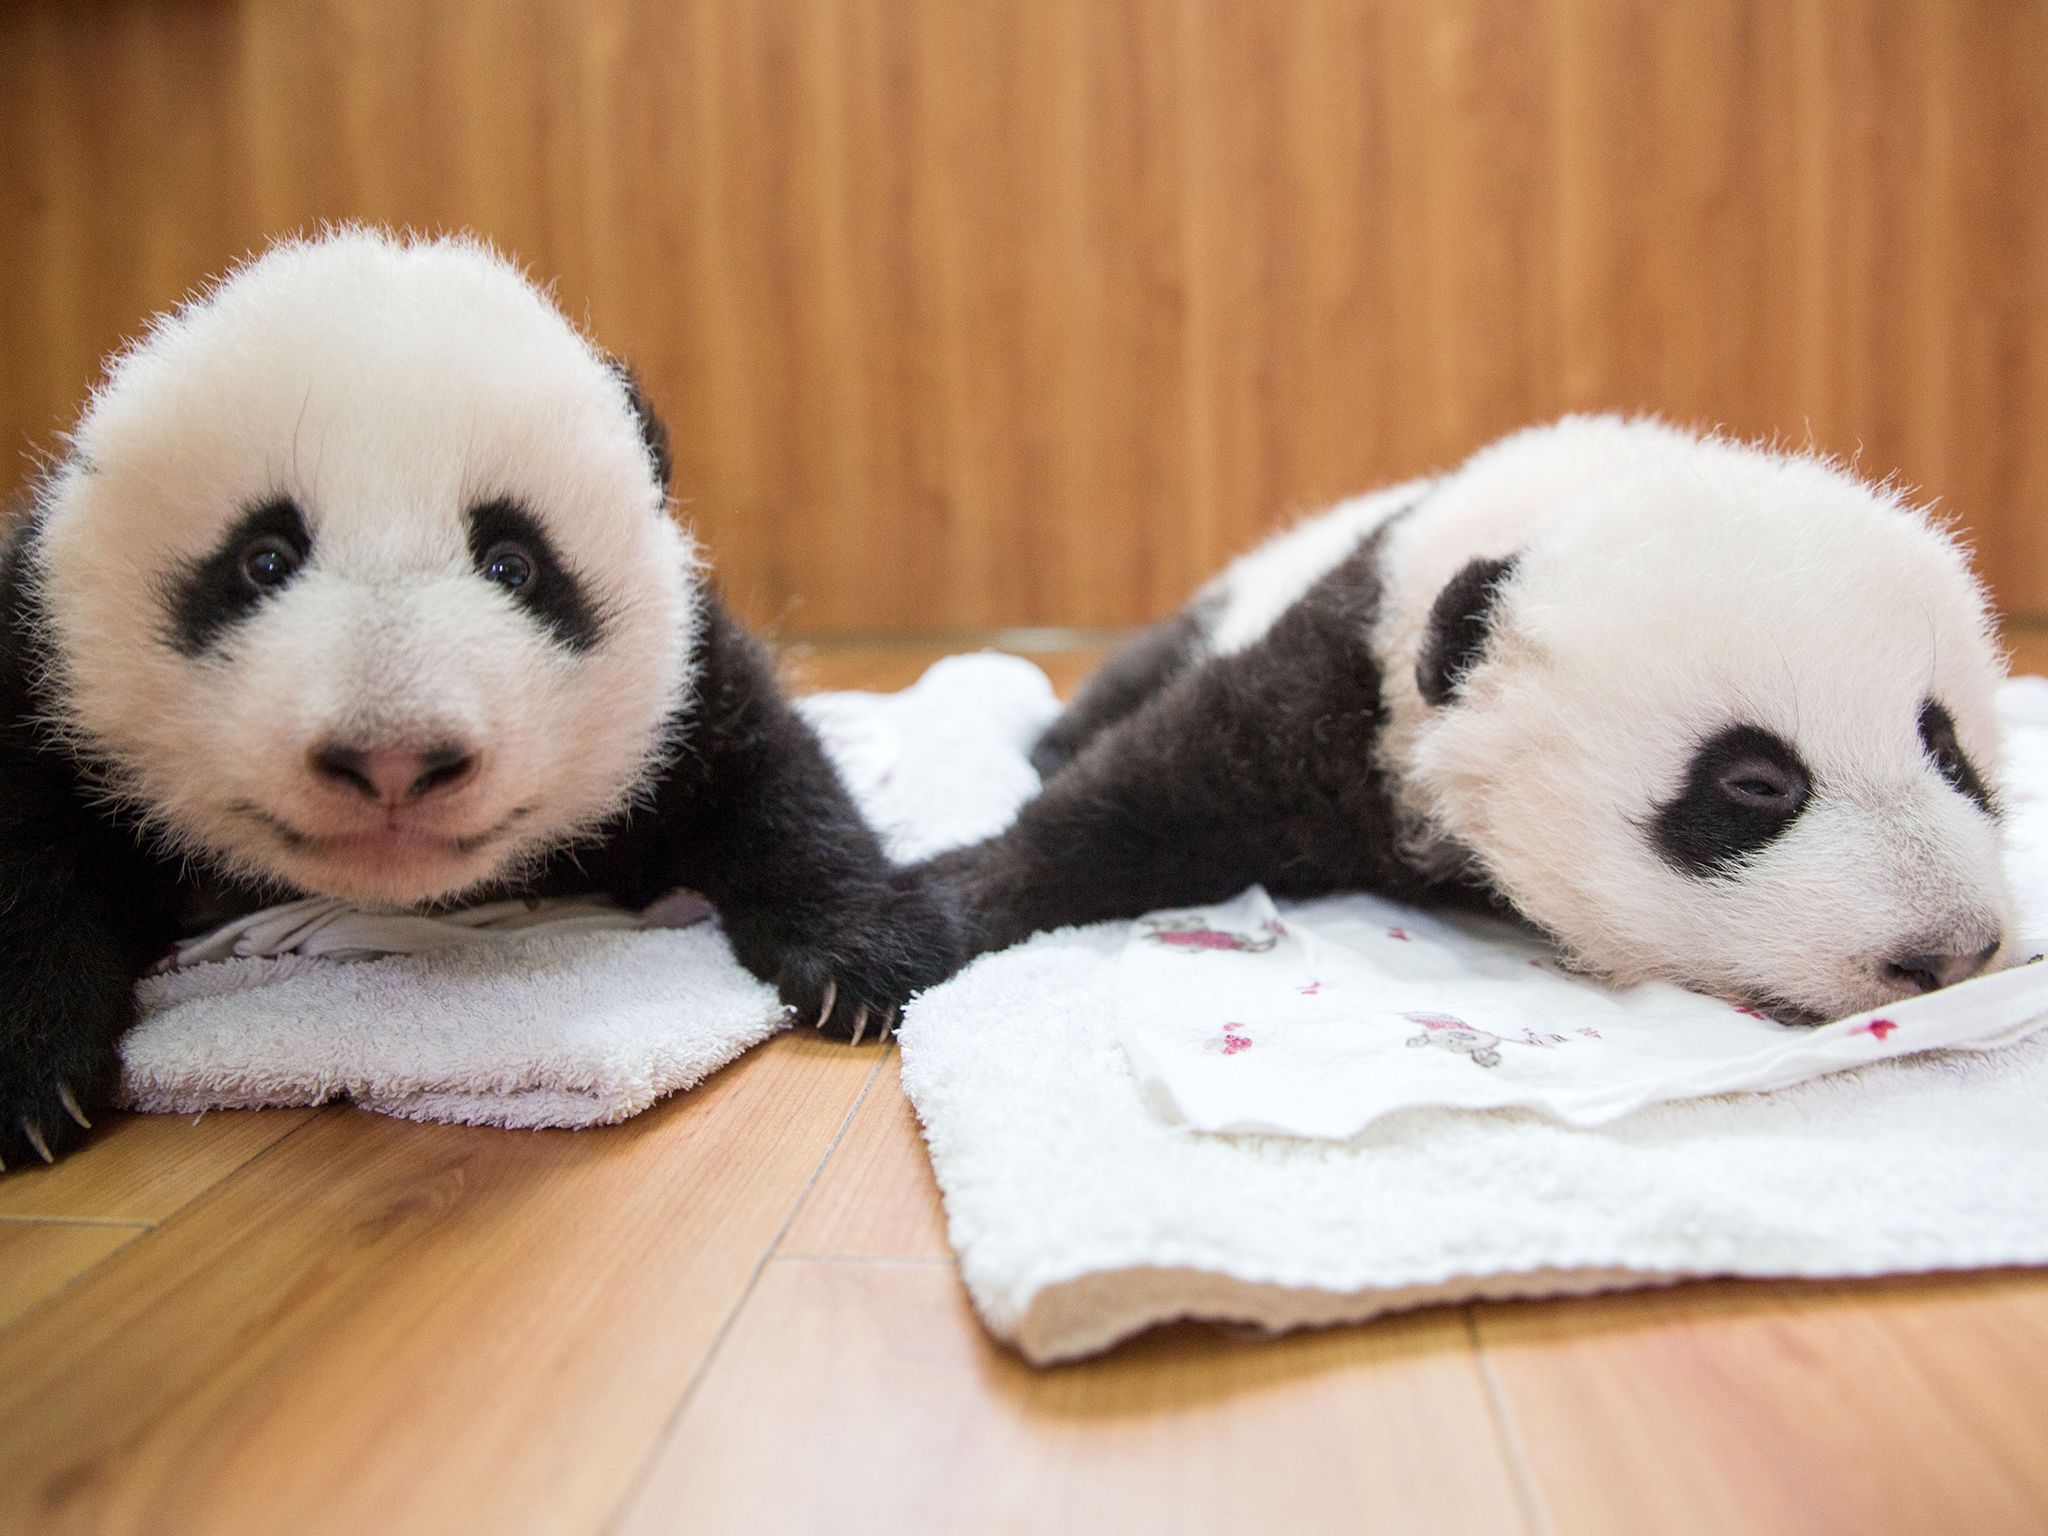 Baby Pandas at Wolong Panda Reserve. This image is from Panda Babies. [Photo of the day - July 2016]